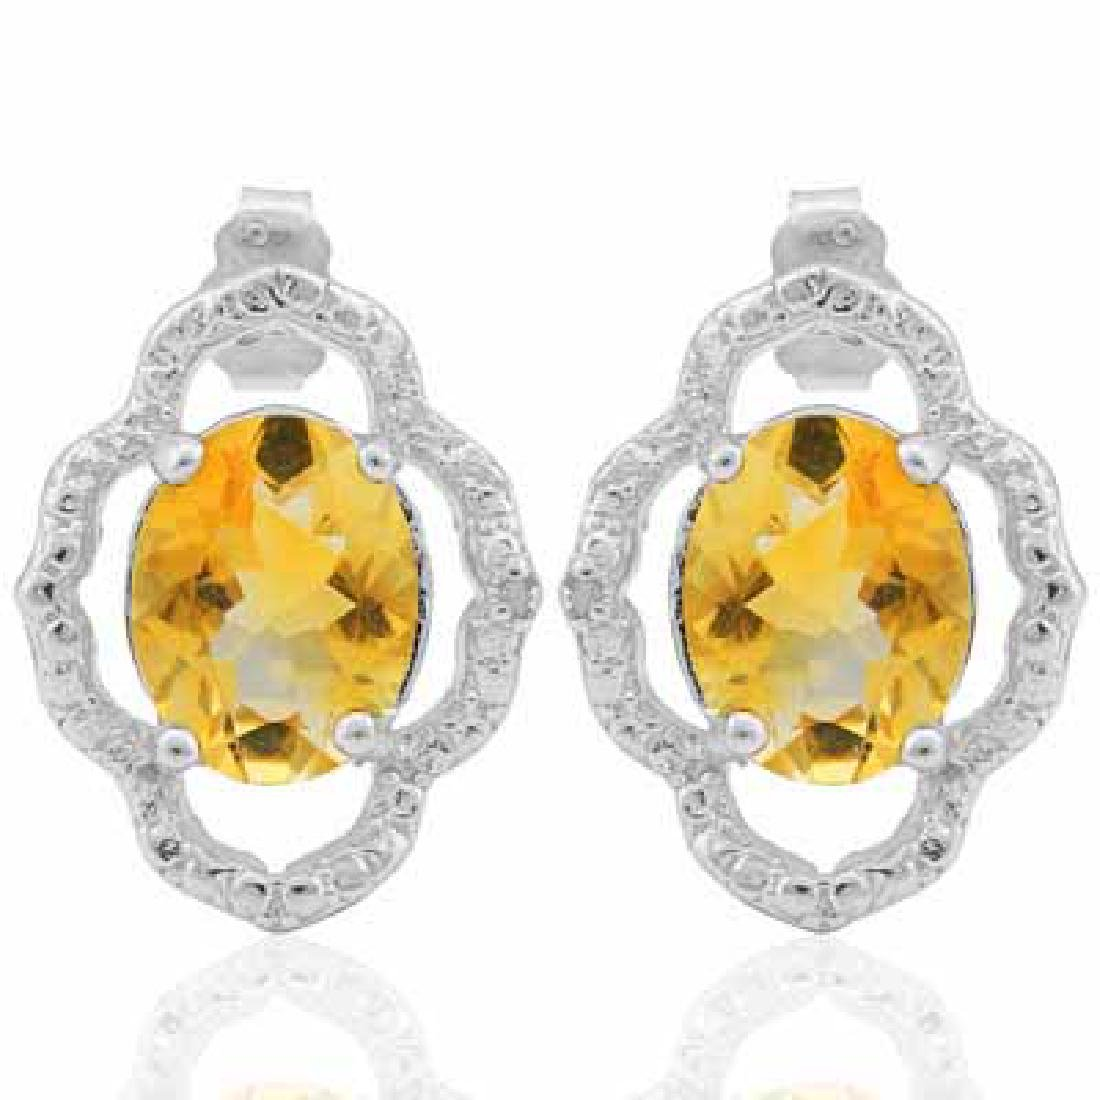 3.142 CARAT TW CITRINE & GENUINE DIAMOND PLATINUM OVER